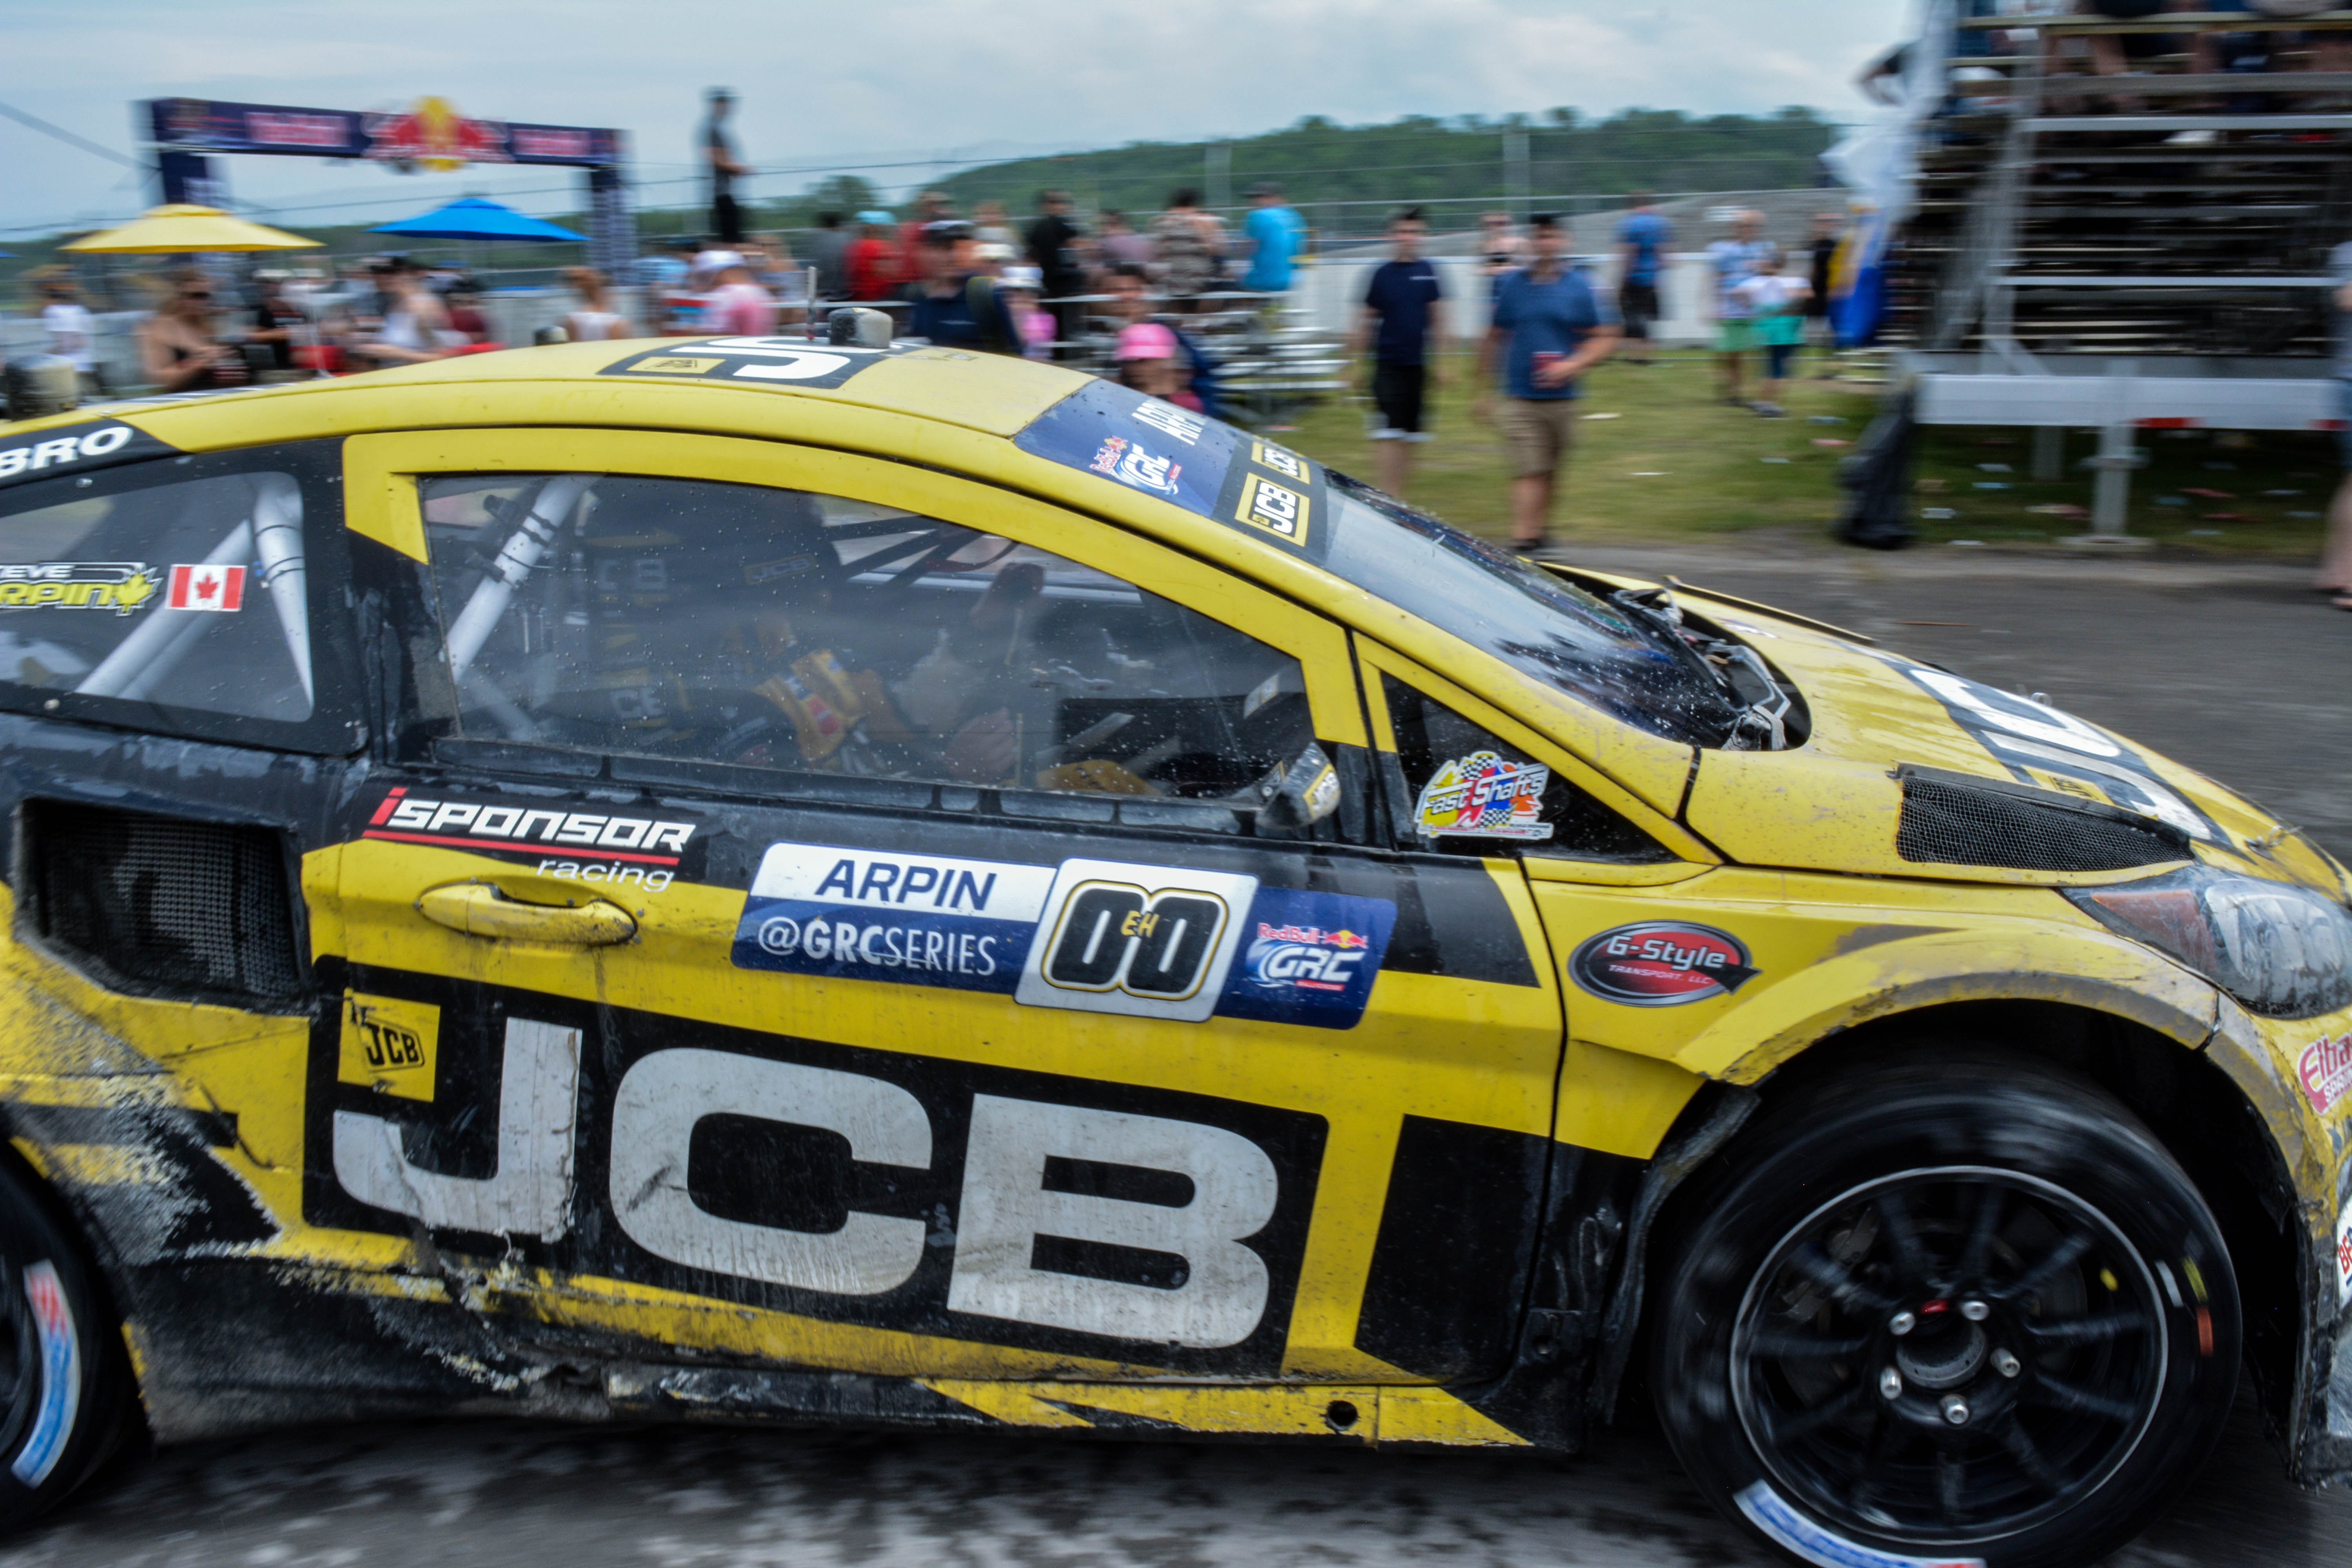 yellow, black, and white rally car